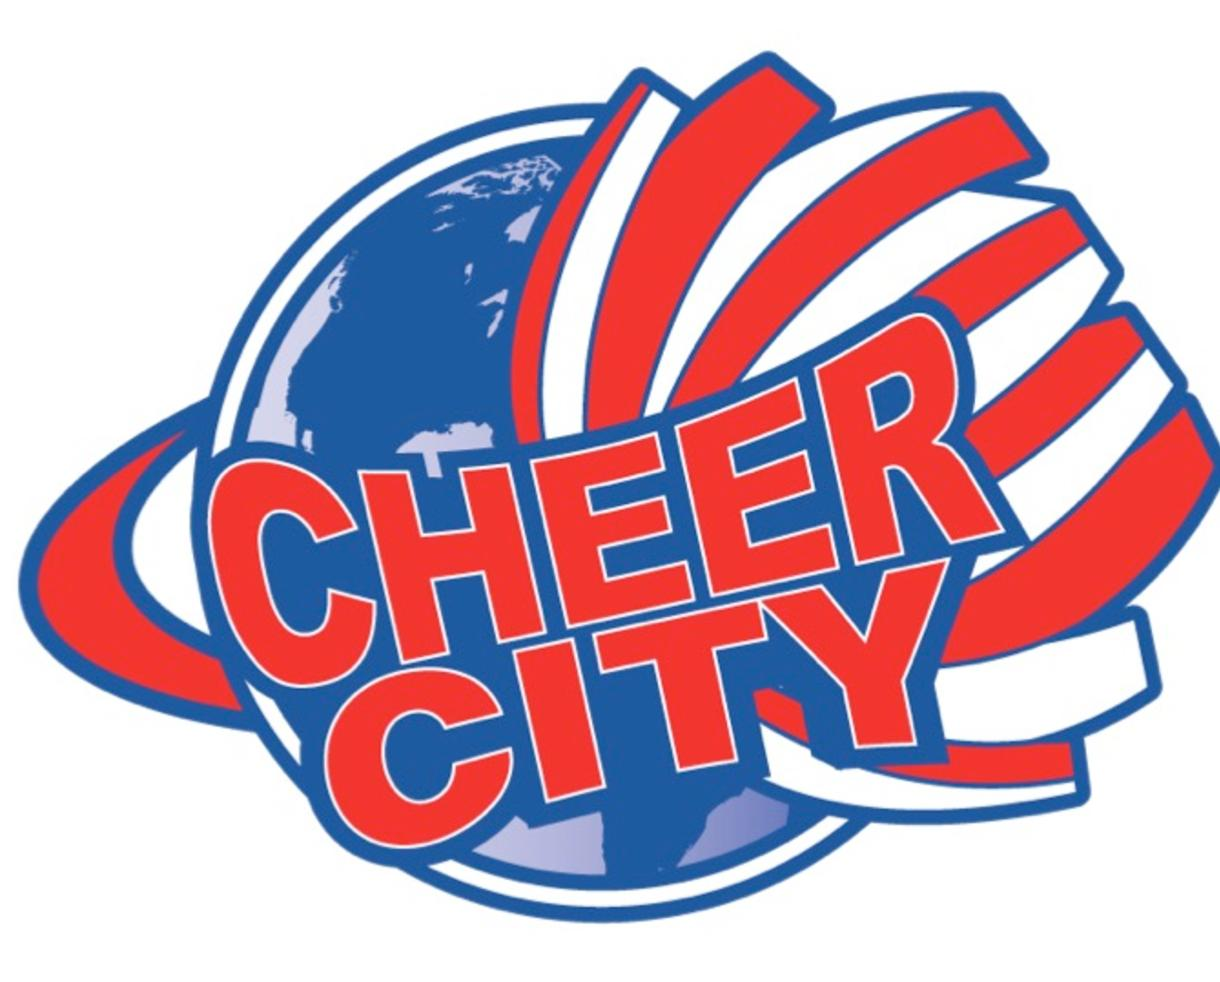 LIMITED TIME ONLY! OPEN TO PAST CAMPERS! One Week of Cheer City Cheer Camp at nZone